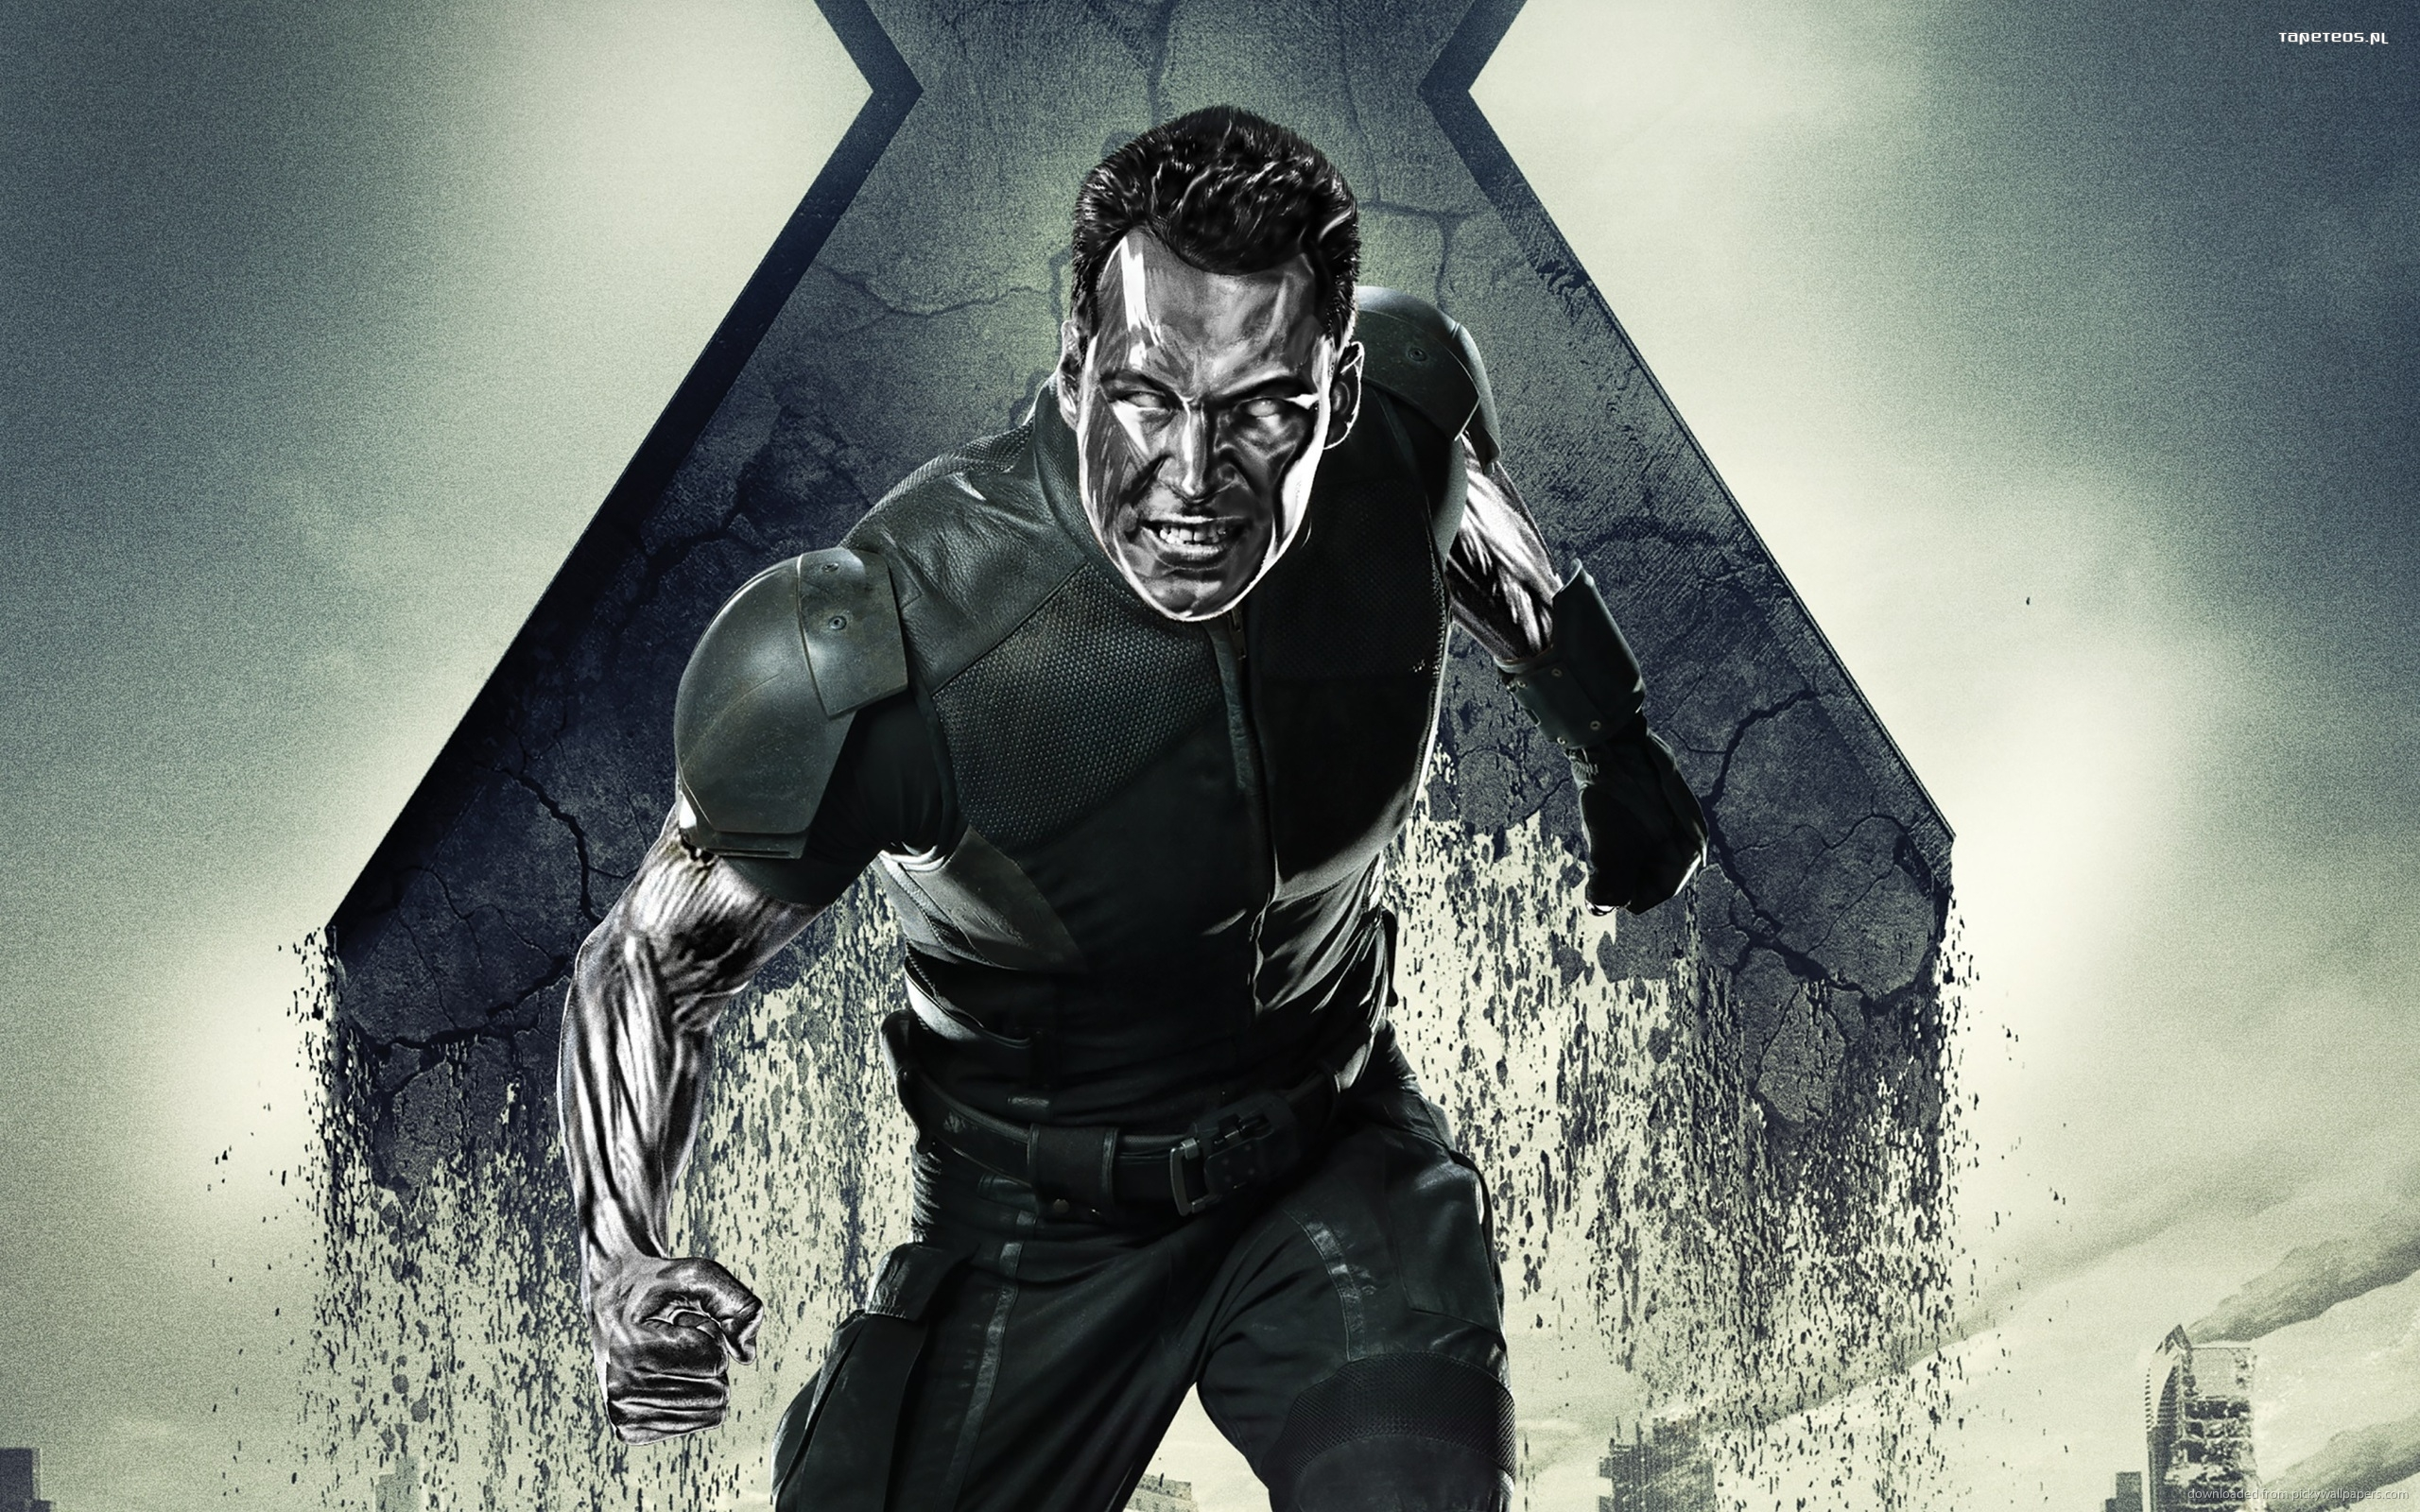 X-Men Days of Future Past 034 Daniel Cudmore, Colossus